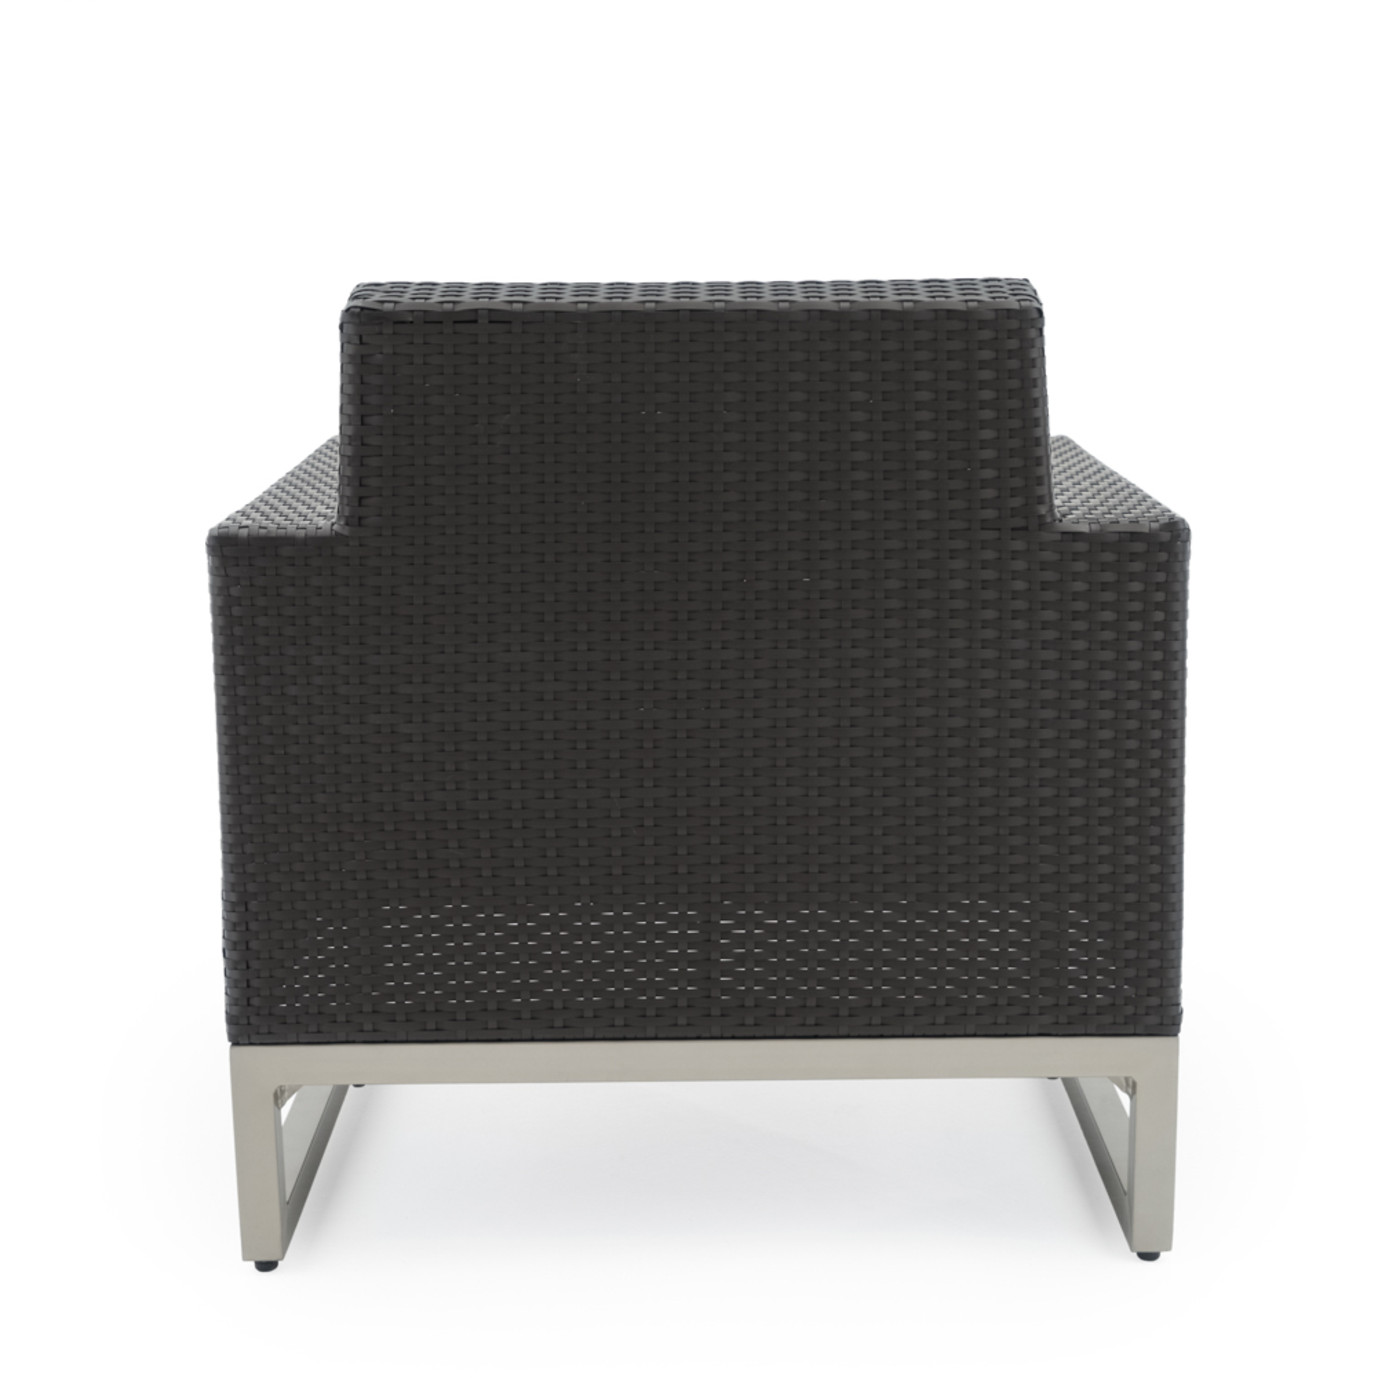 Milo™ Espresso Club Chairs - Charcoal Gray